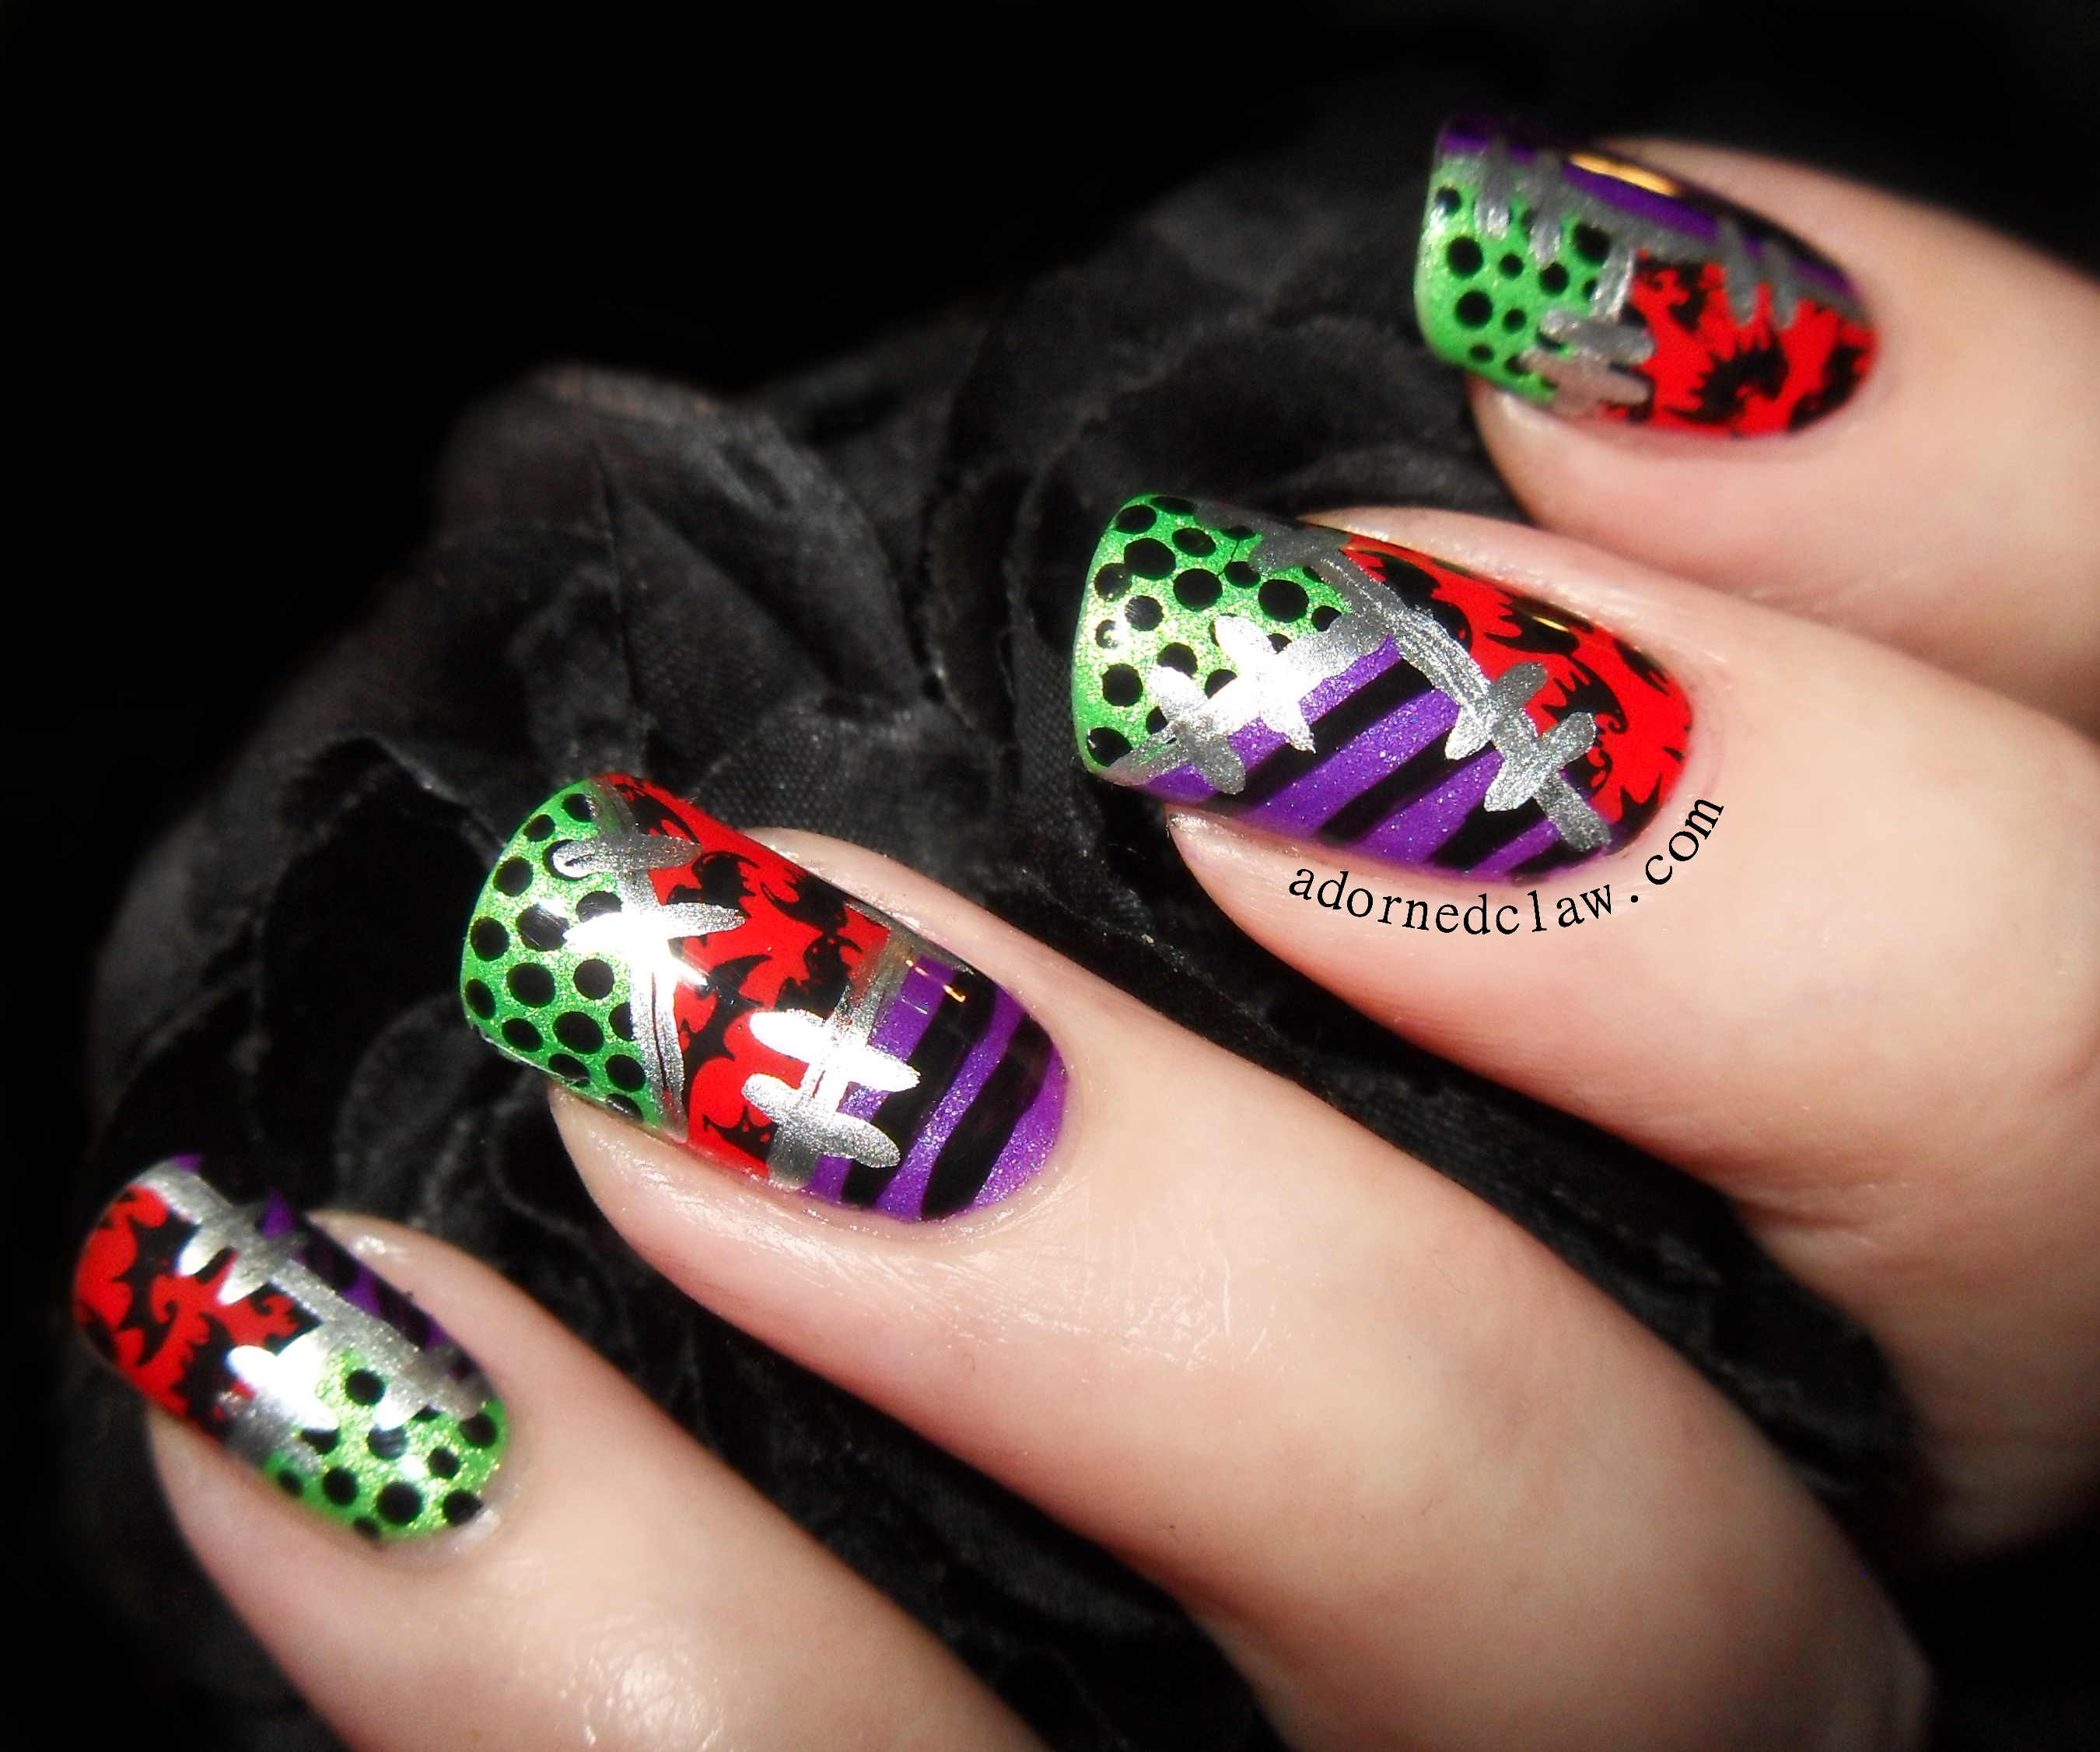 The Adorned Claw: Halloween Patchwork